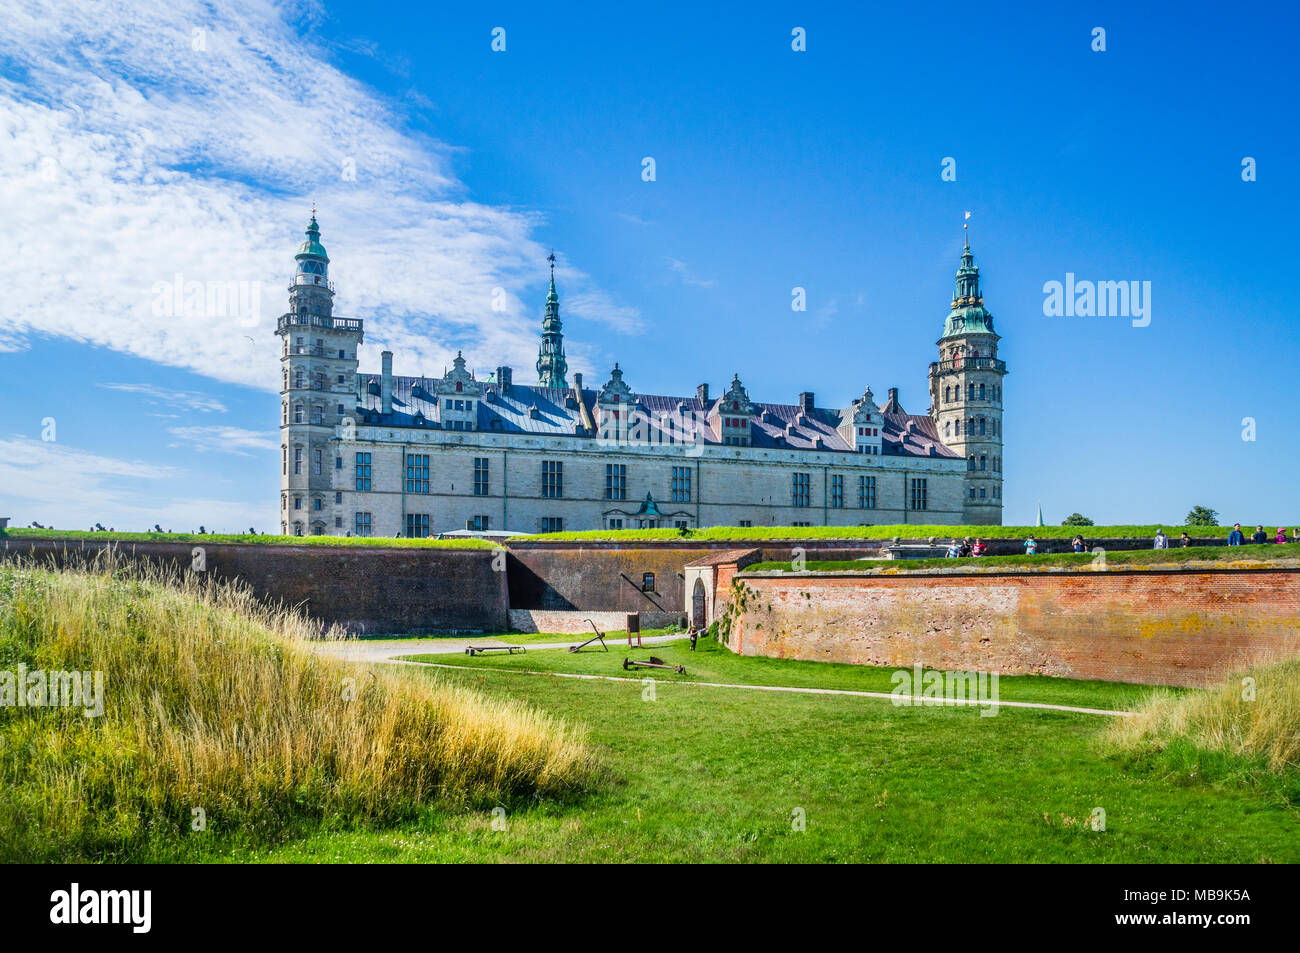 view of Kronborg Castle, a magnificent Renaissance castle immortalized as Elsinore in William Shakespeare's play Hamlet, Helsingør, Zealand, Denmark - Stock Image